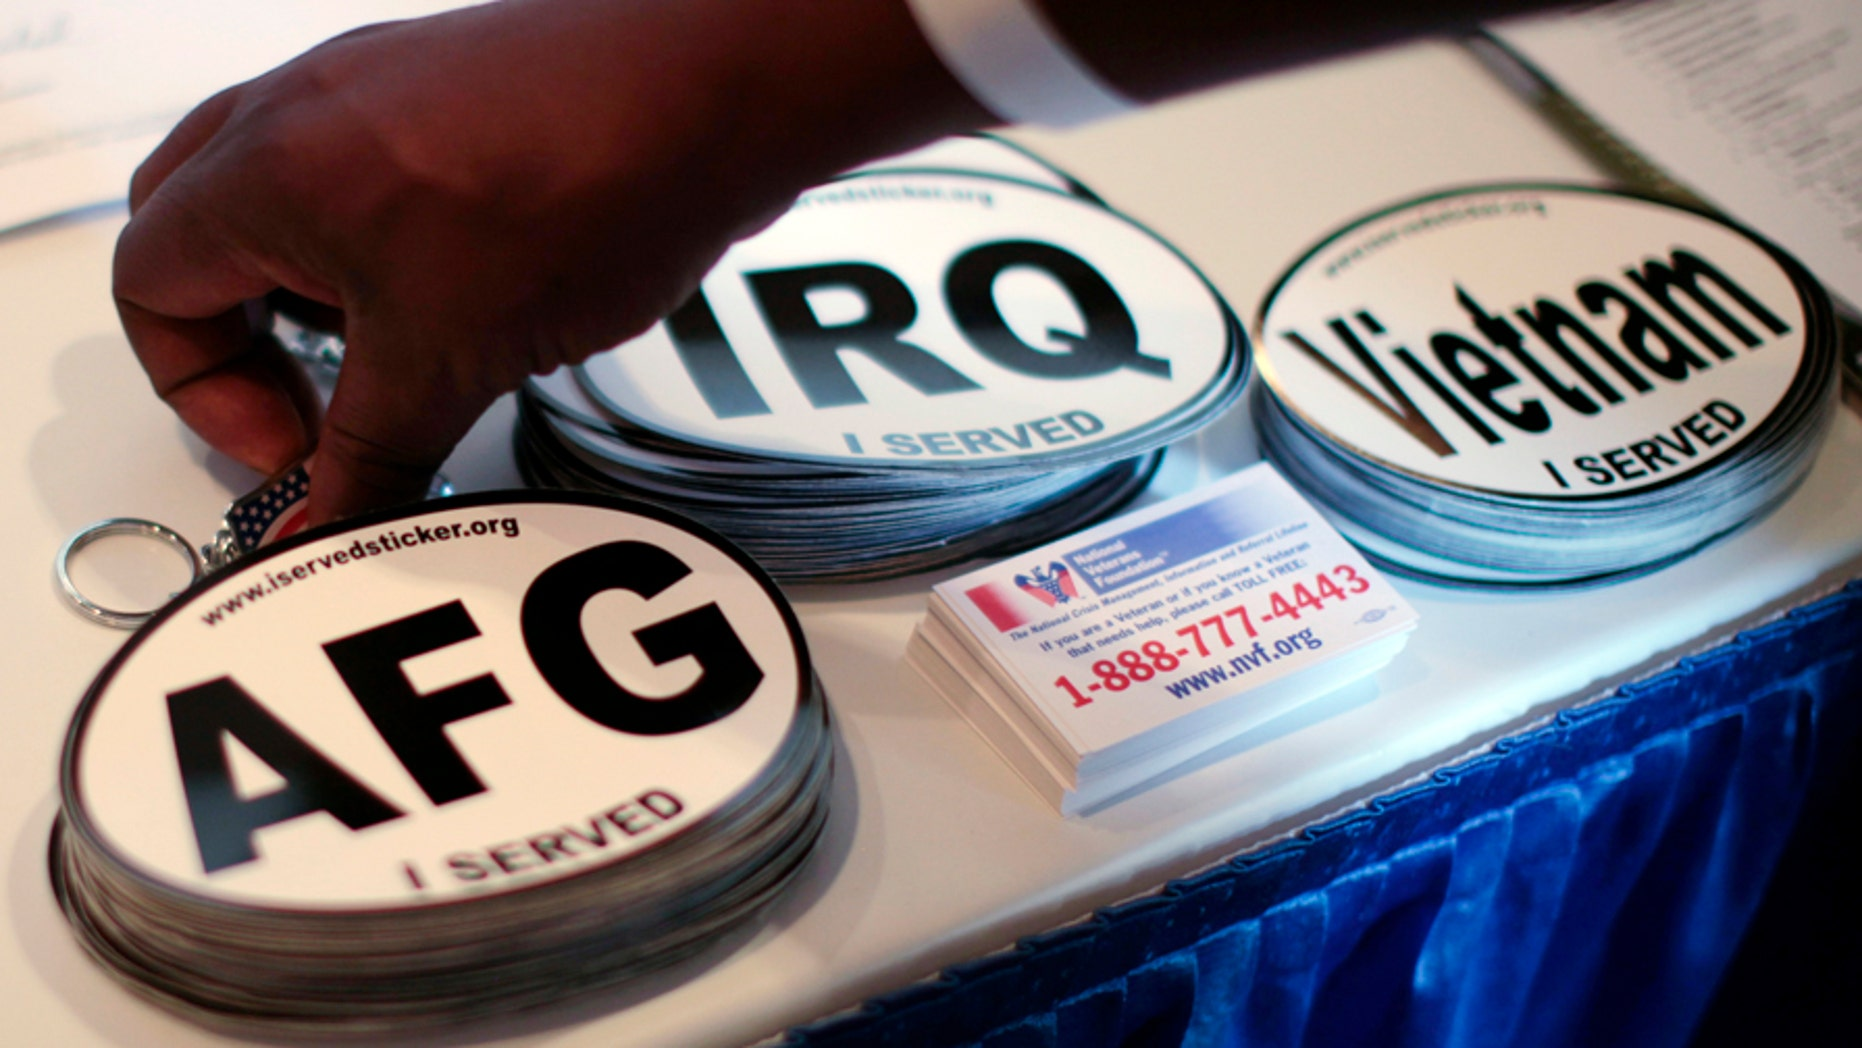 Car stickers commemorating U.S. military service in Vietnam, Afghanistan and Iraq are seen on a recruiter's table at a veterans job fair in Los Angeles, California November 10, 2010. REUTERS/Lucy Nicholson (UNITED STATES - Tags: EMPLOYMENT BUSINESS) - GM1E6BB0KP901